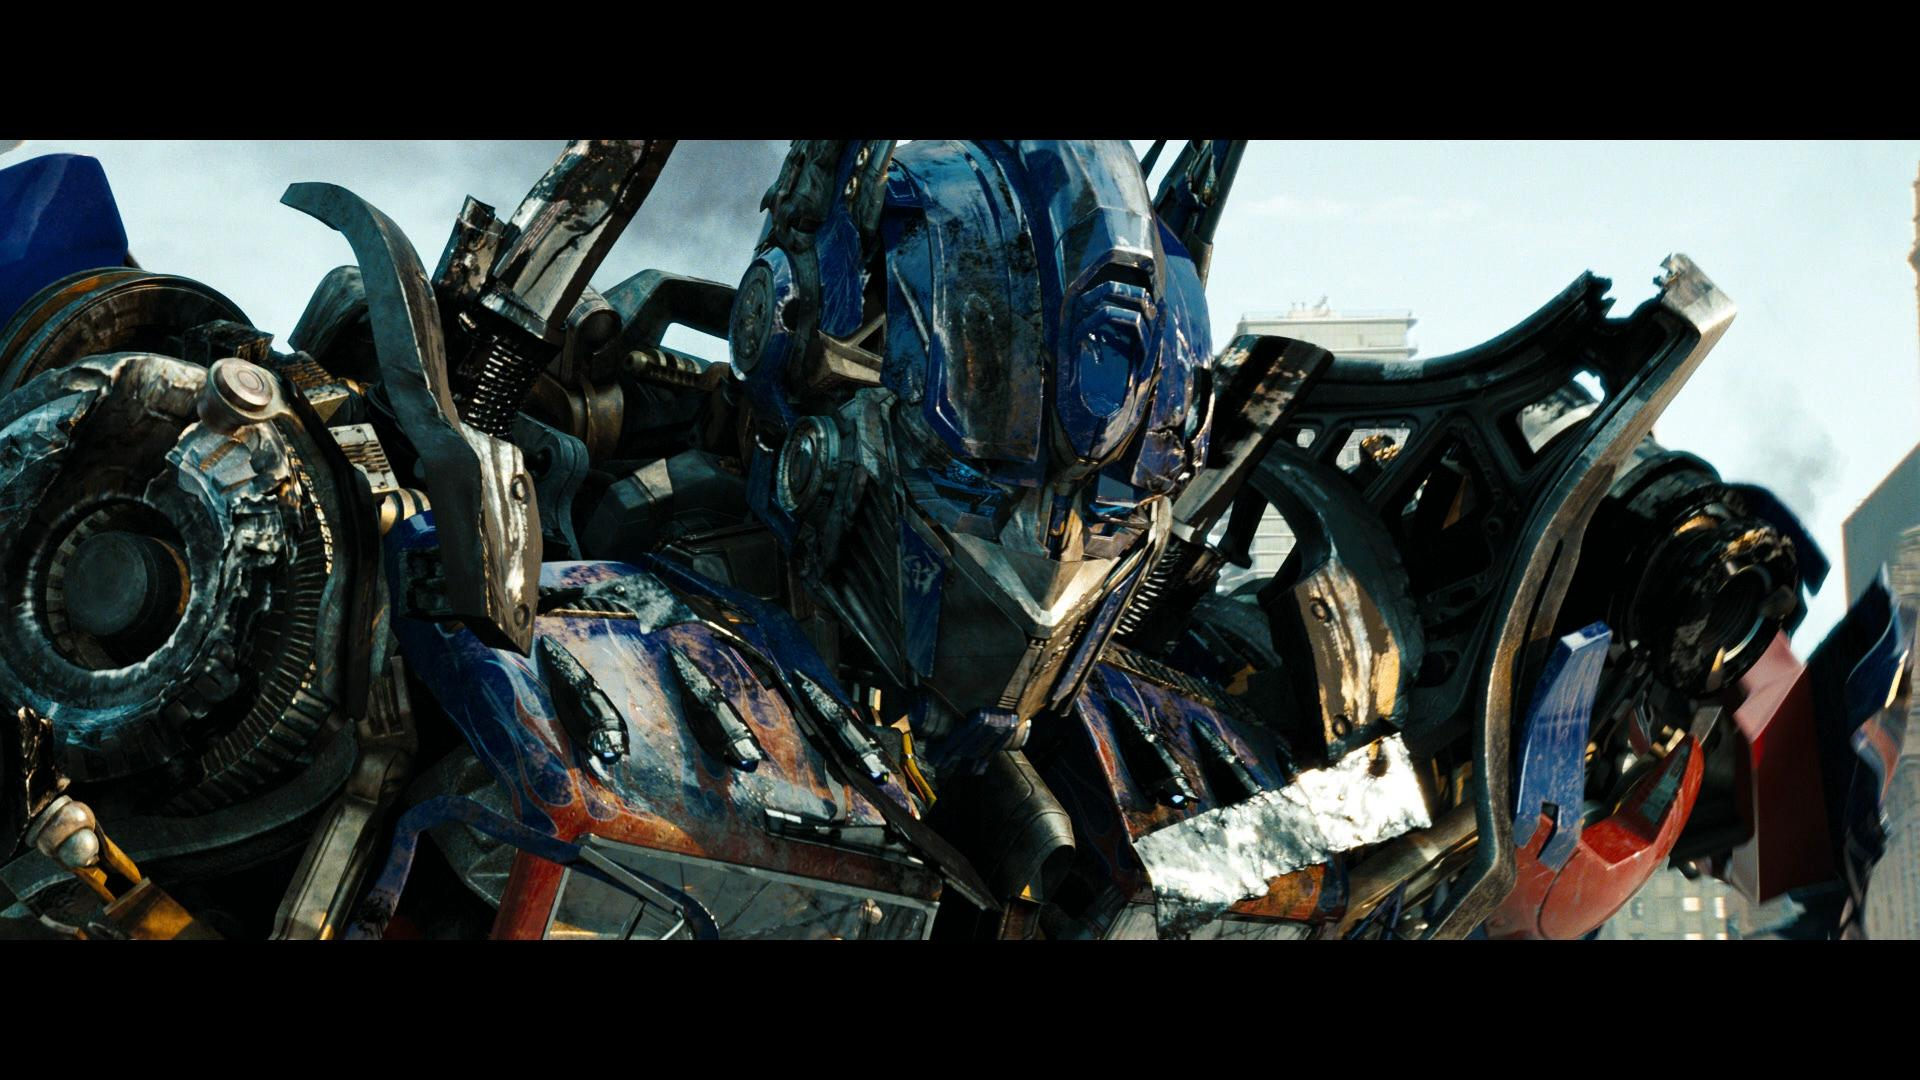 Transformers dark of the moon 2017 bluray 1080p x264 dts ...